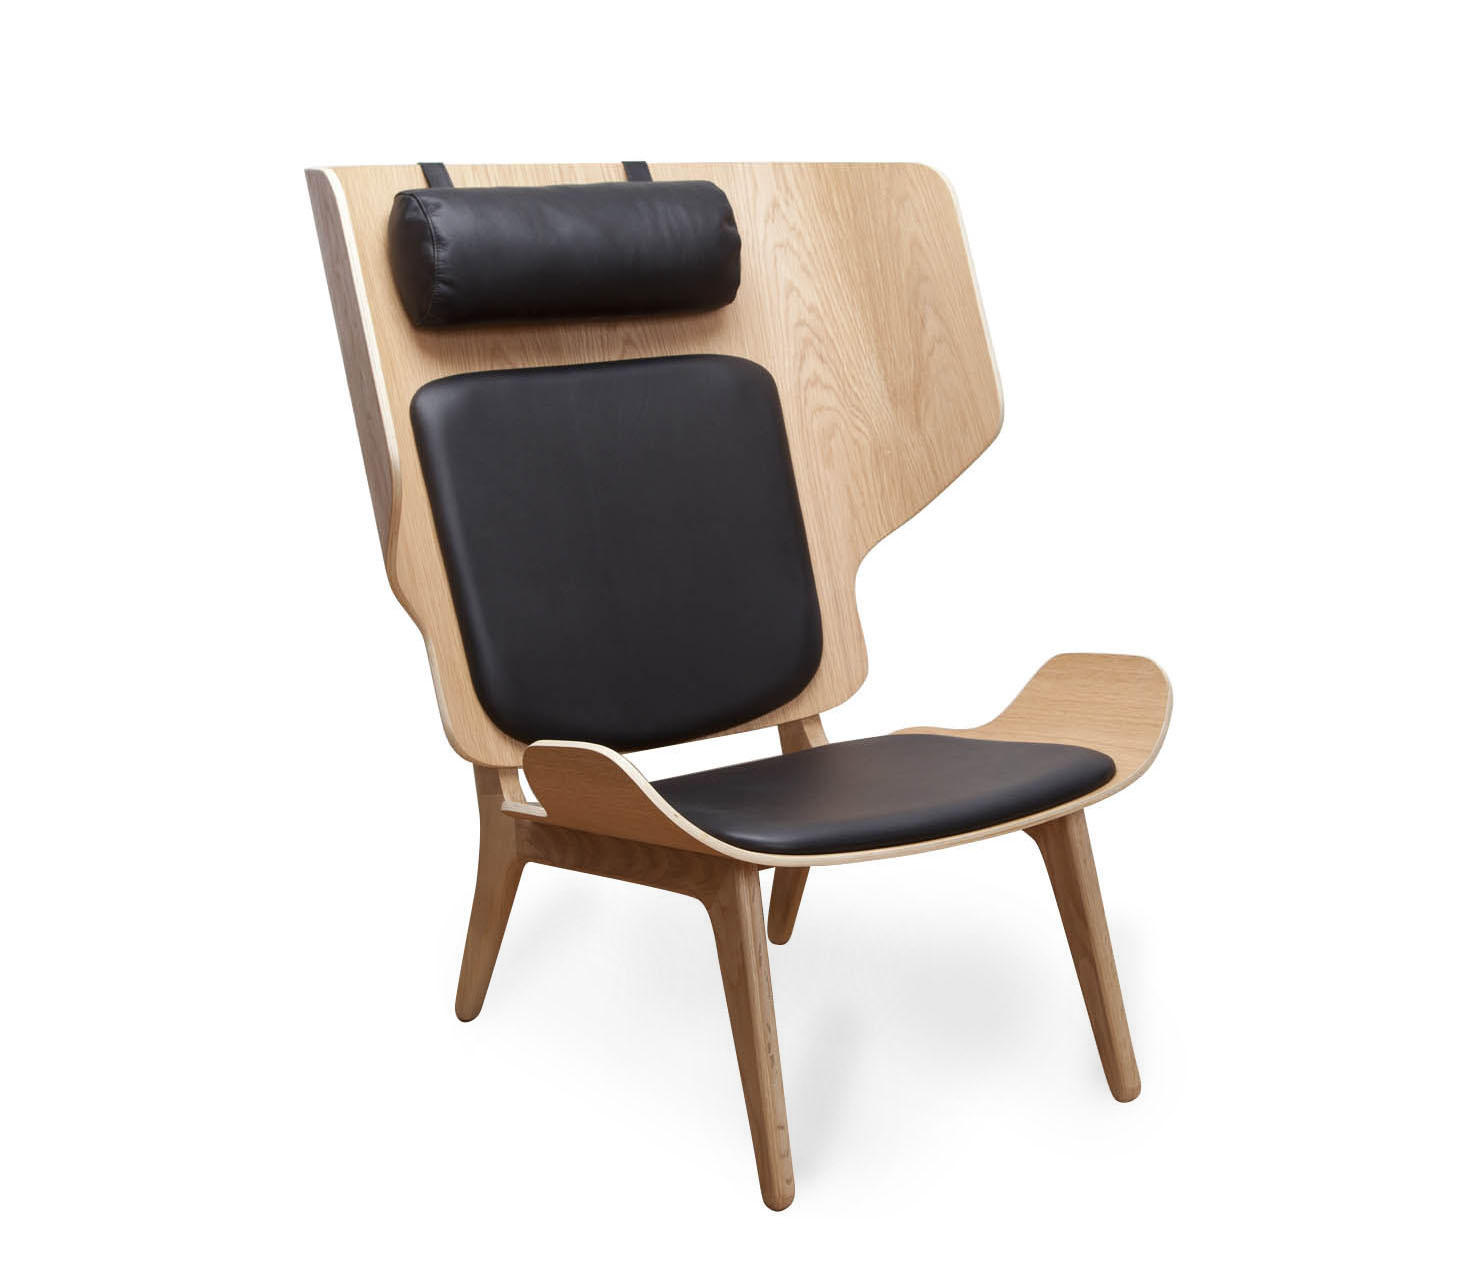 mammoth sessel loungesessel von norr11 architonic. Black Bedroom Furniture Sets. Home Design Ideas